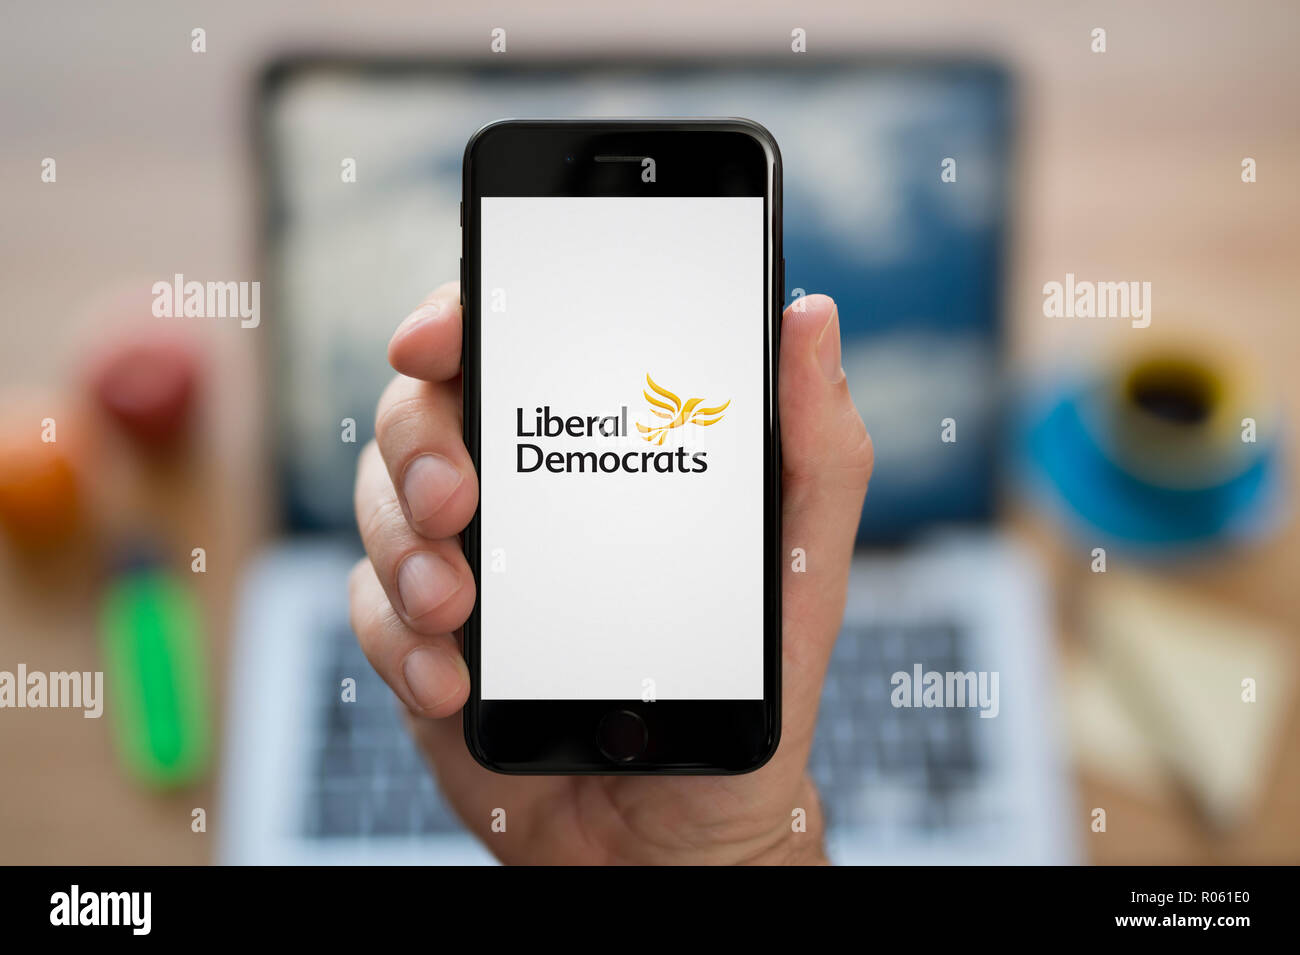 A man looks at his iPhone which displays the Liberal Democrats logo, while sat at his computer desk (Editorial use only). - Stock Image